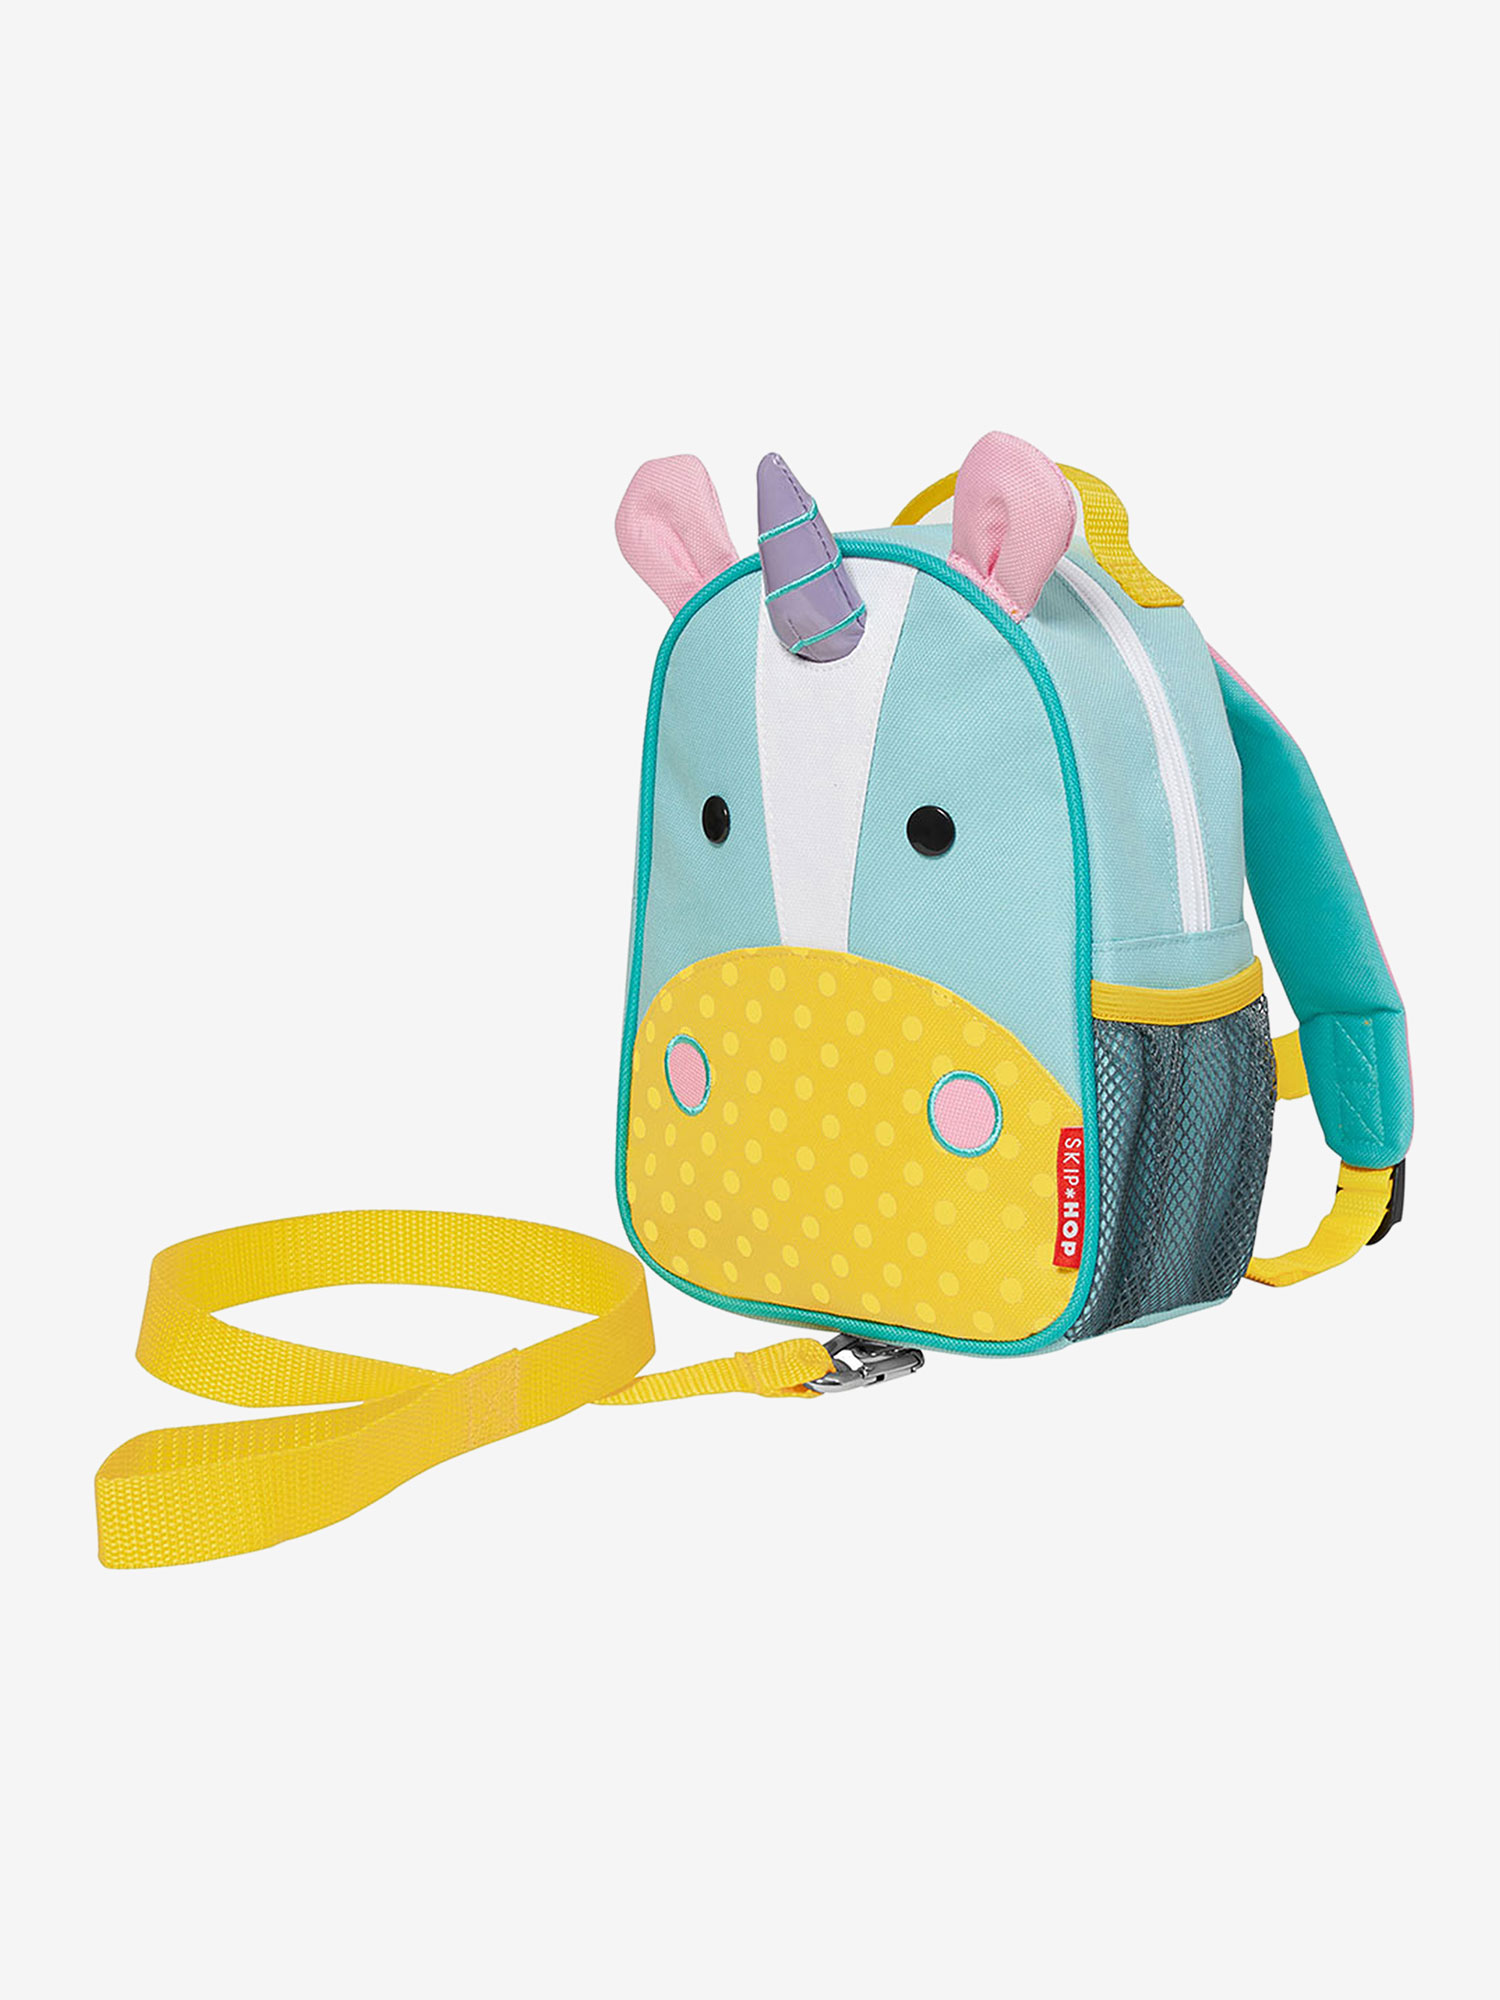 Skip Hop Zoo Mini Unicorn Backpack